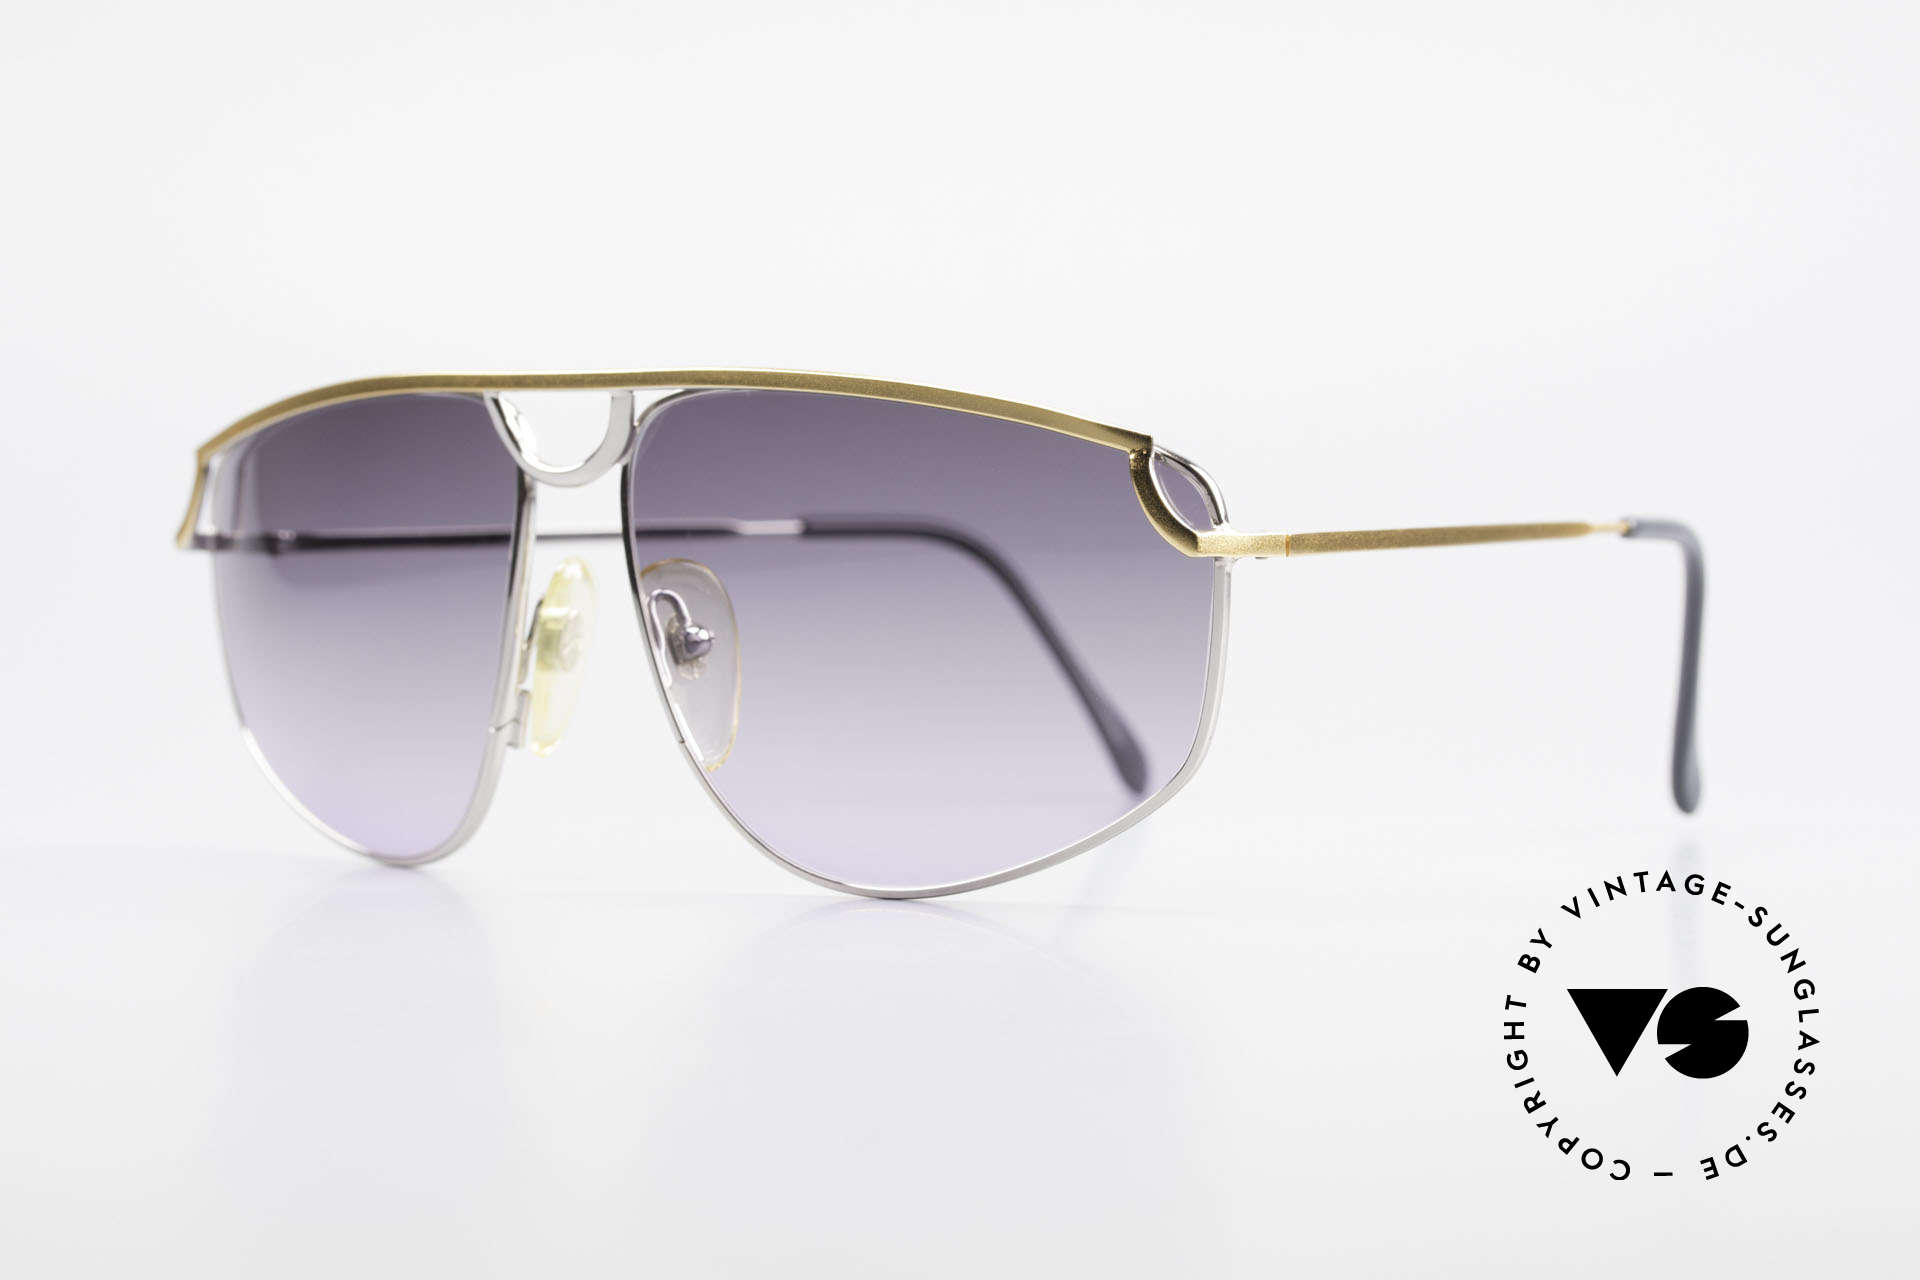 Casanova DSC9 Rare Aviator Style Sunglasses, gray-purple gradient lenses (eye-catching; 100% UV), Made for Men and Women